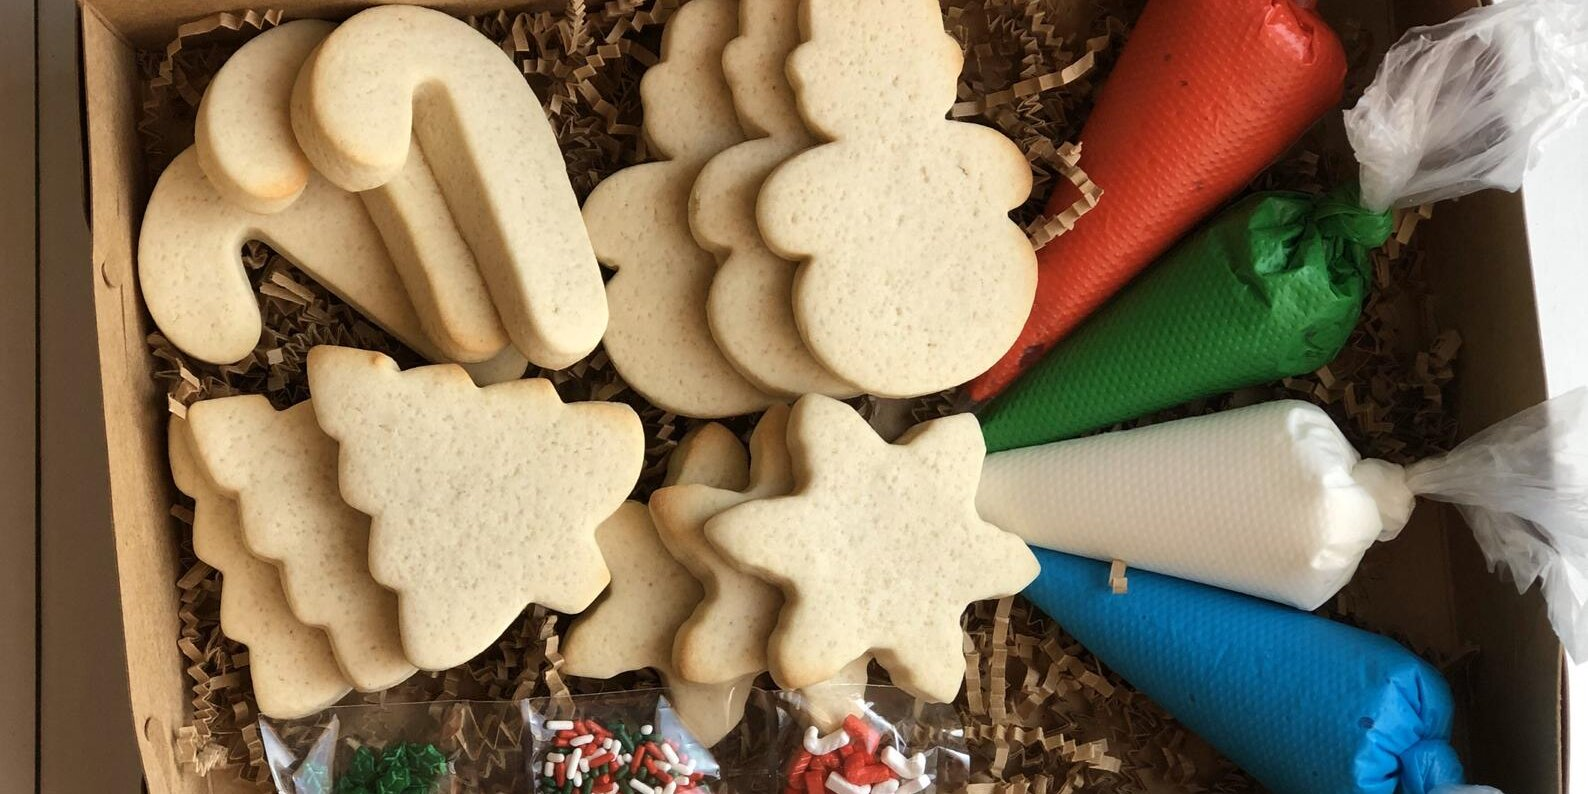 The 10 Best Cookie Decorating Kits for the Whole Family